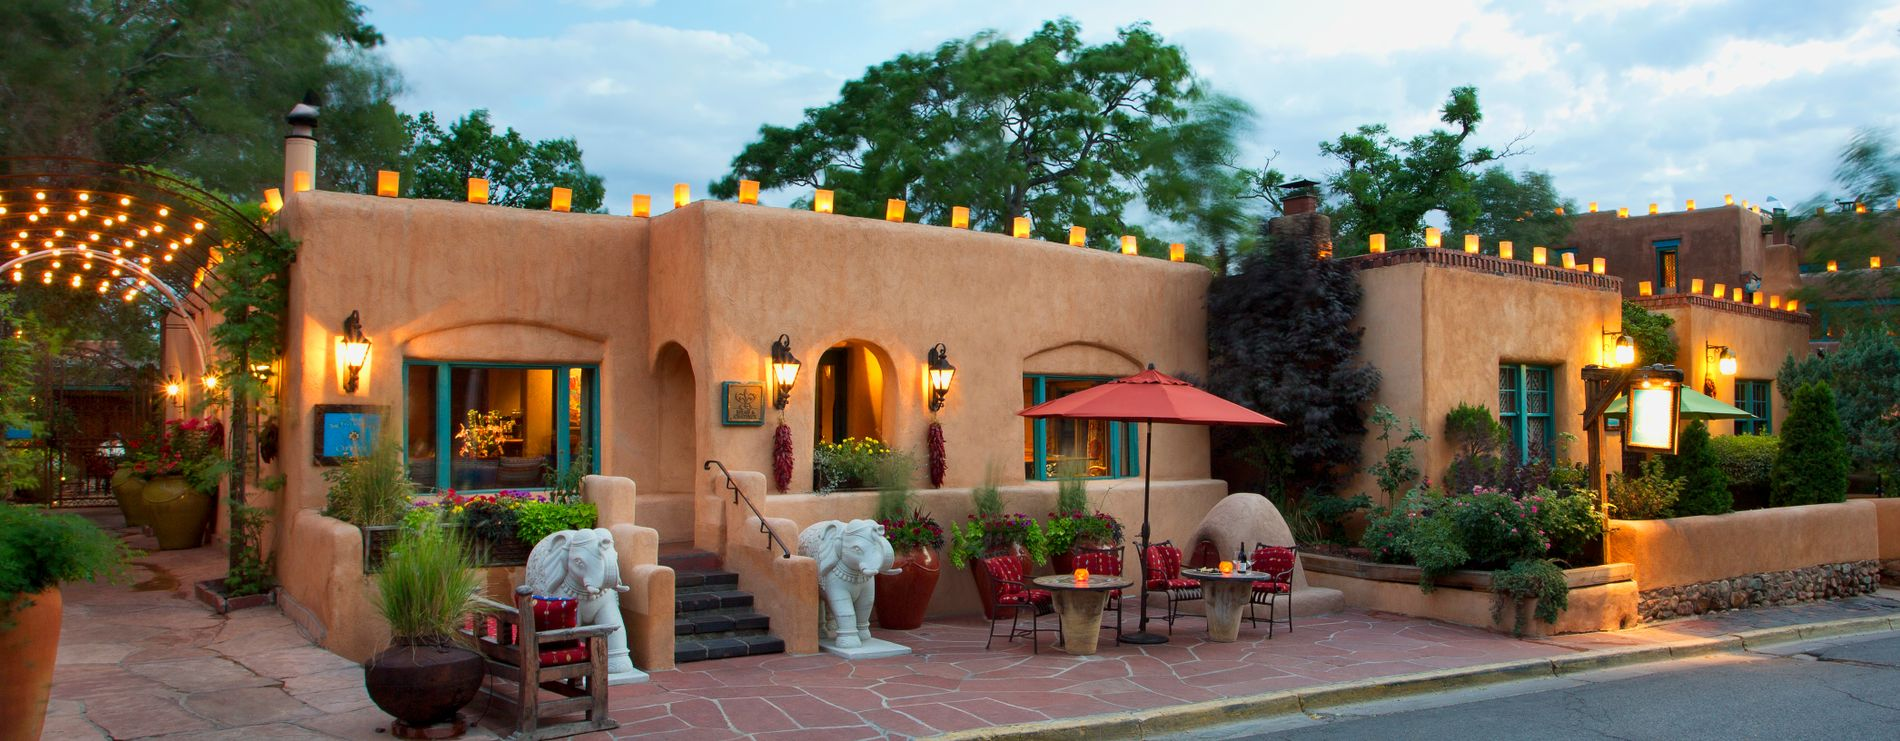 Five Graces Santa Fe Hotel